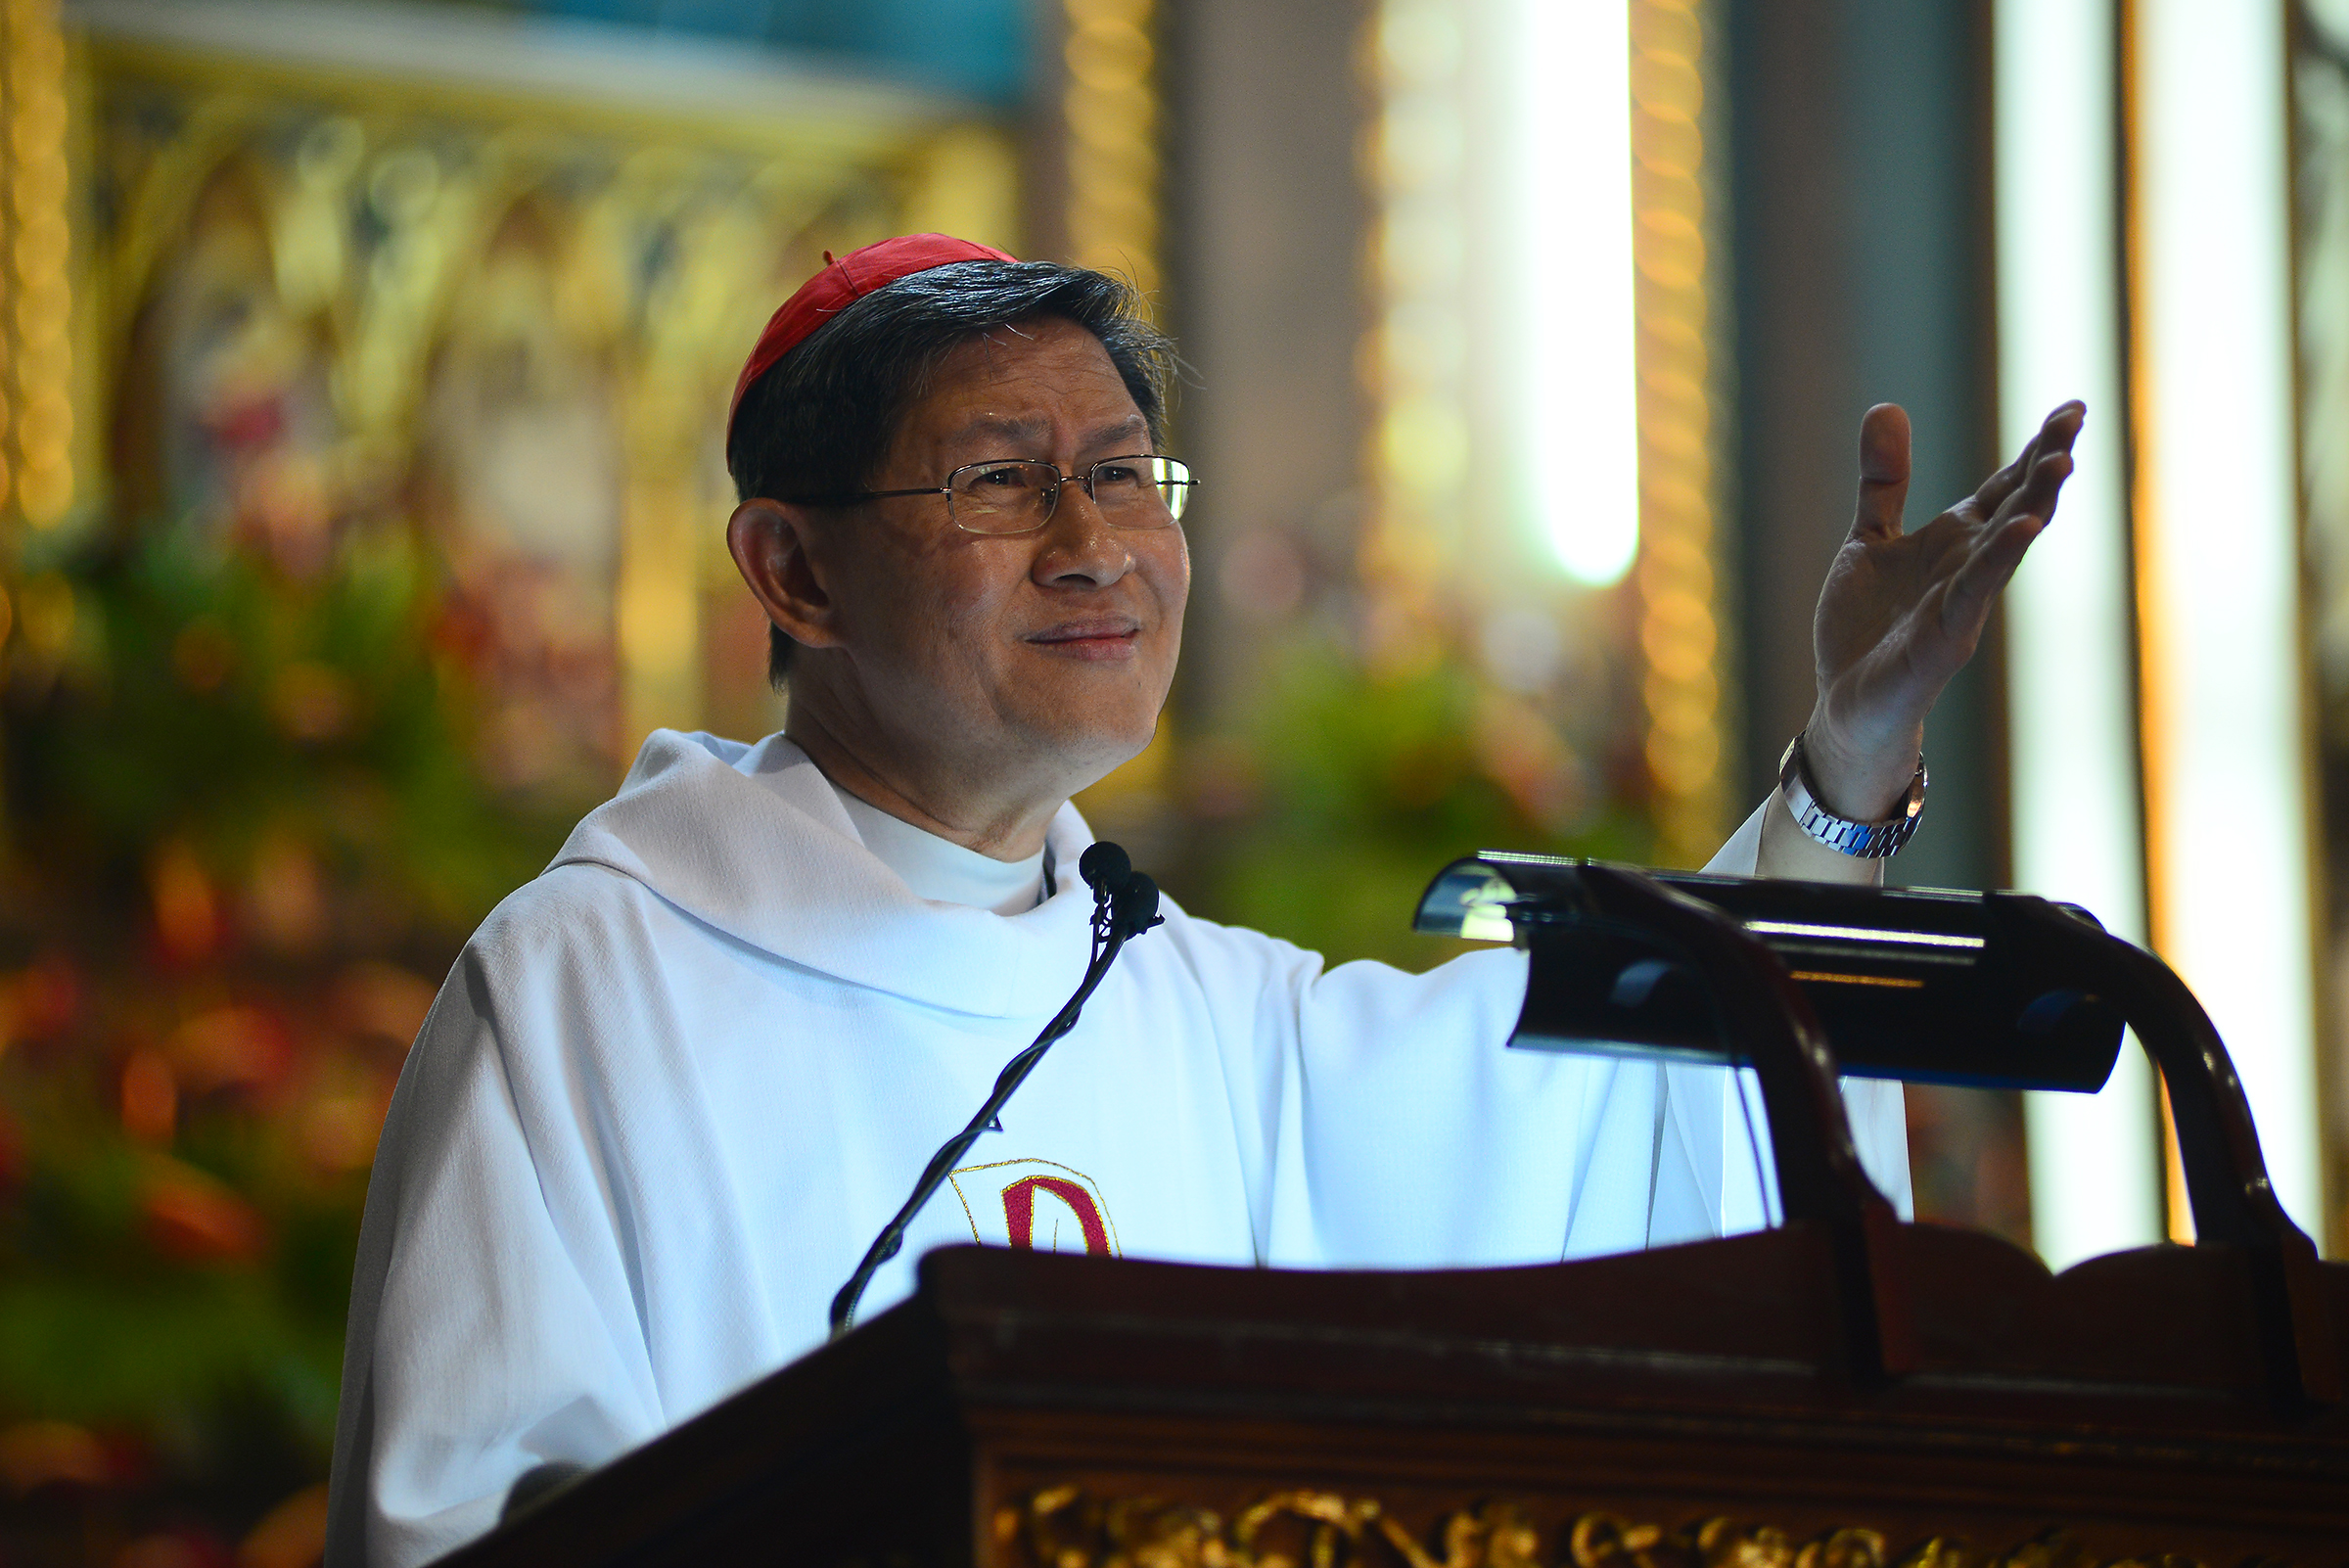 NOT HOPELESS. Manila Archbishop Luis Tan Cardinal Tagle tells former drug dependents that no one can claim they are a hopeless case. Photo by Maria Tan/Rappler